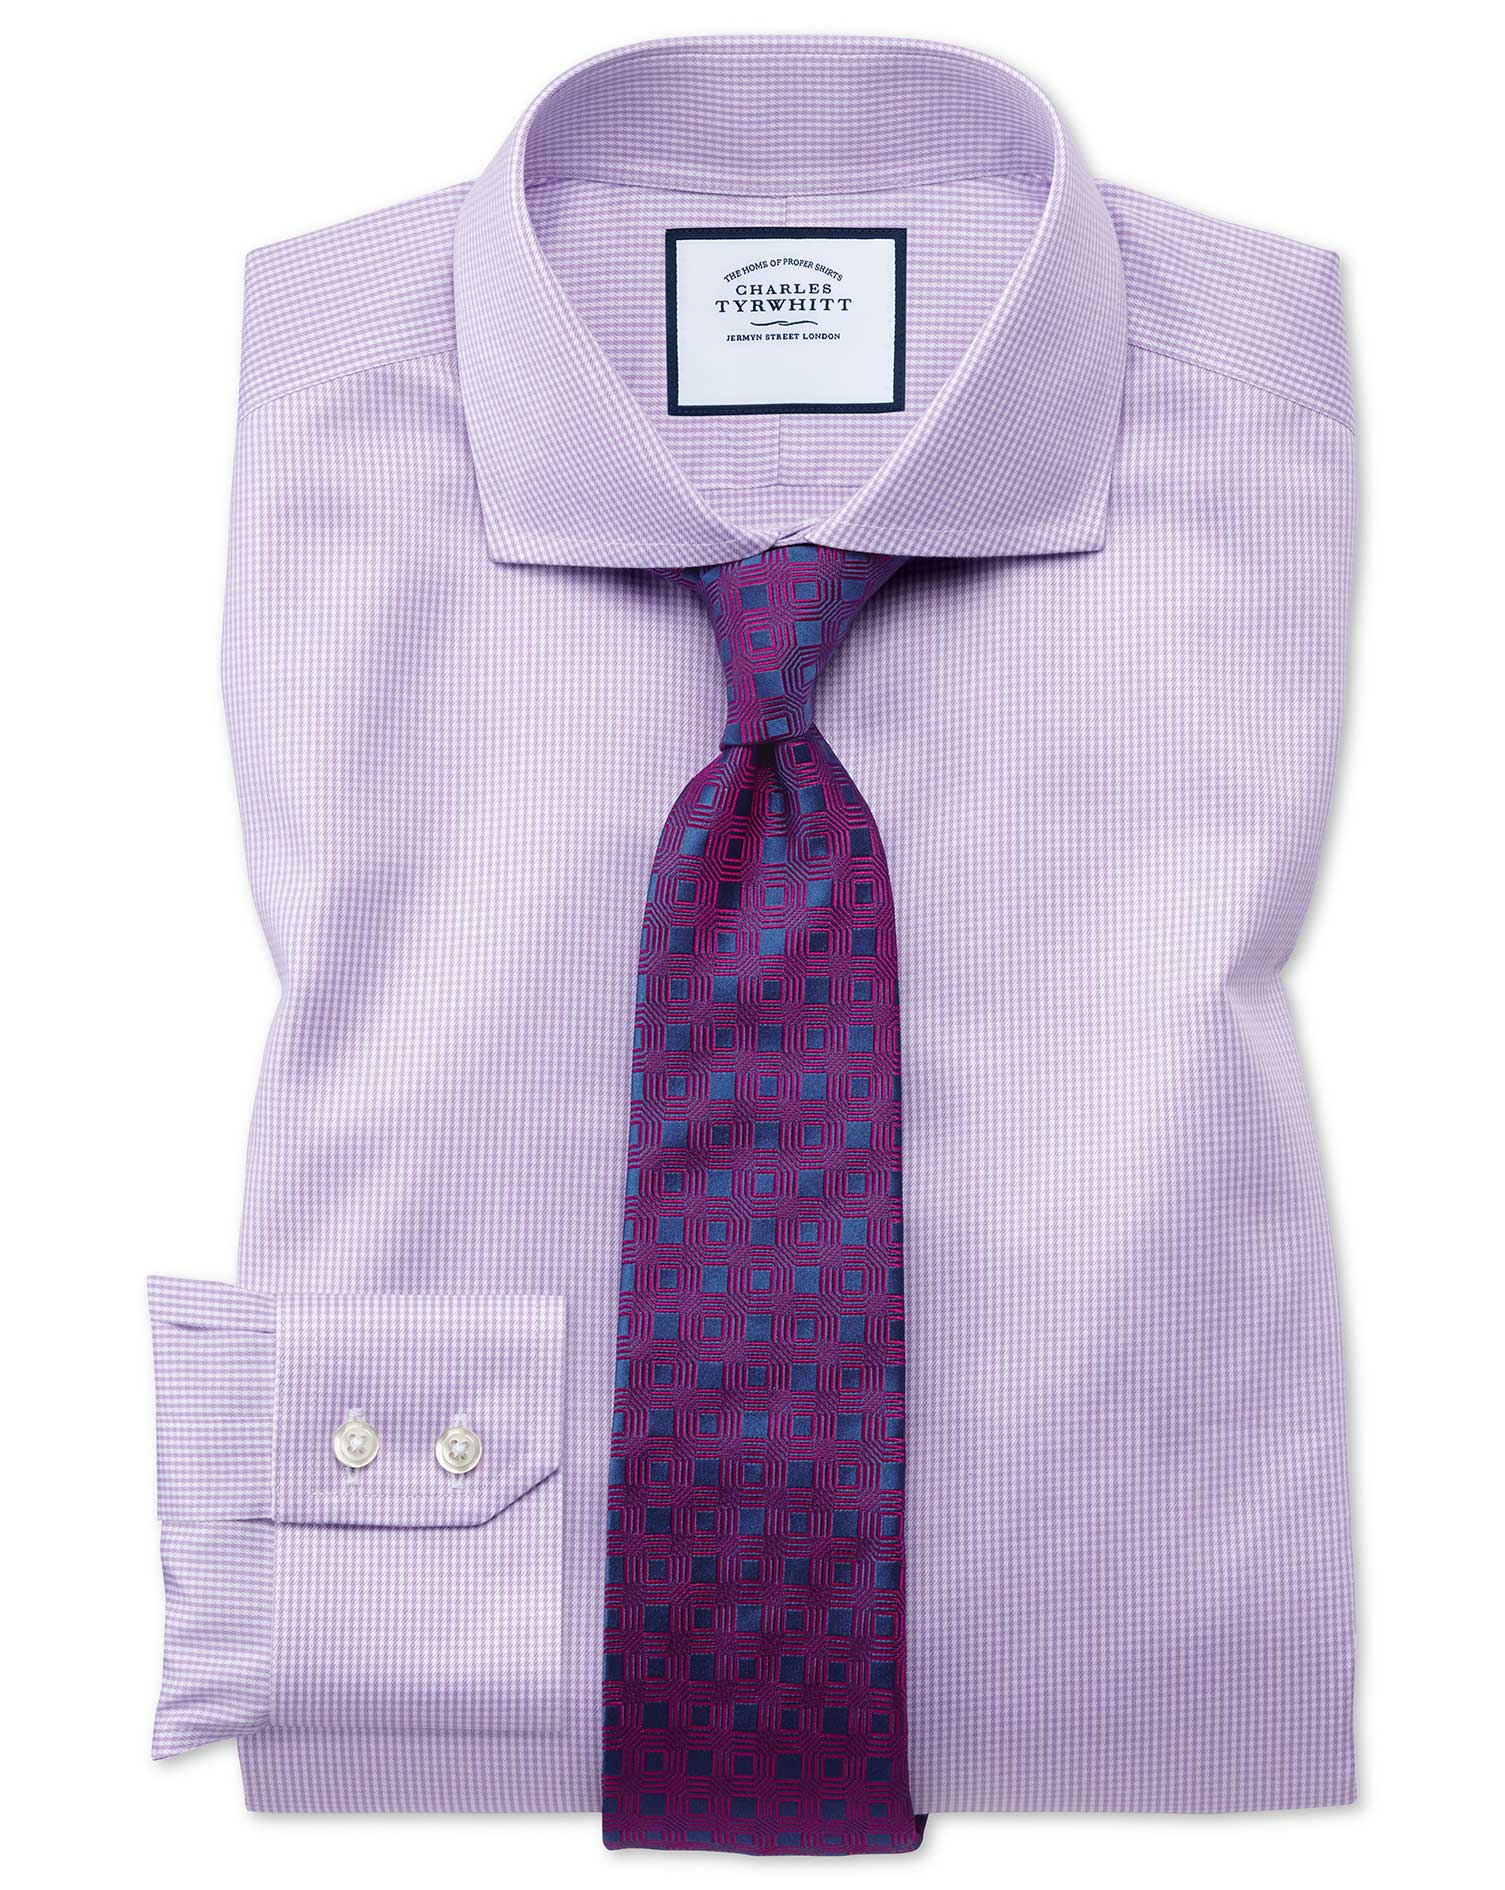 Extra Slim Fit Cutaway Non-Iron Puppytooth Lilac Cotton Formal Shirt Double Cuff Size 16.5/36 by Cha